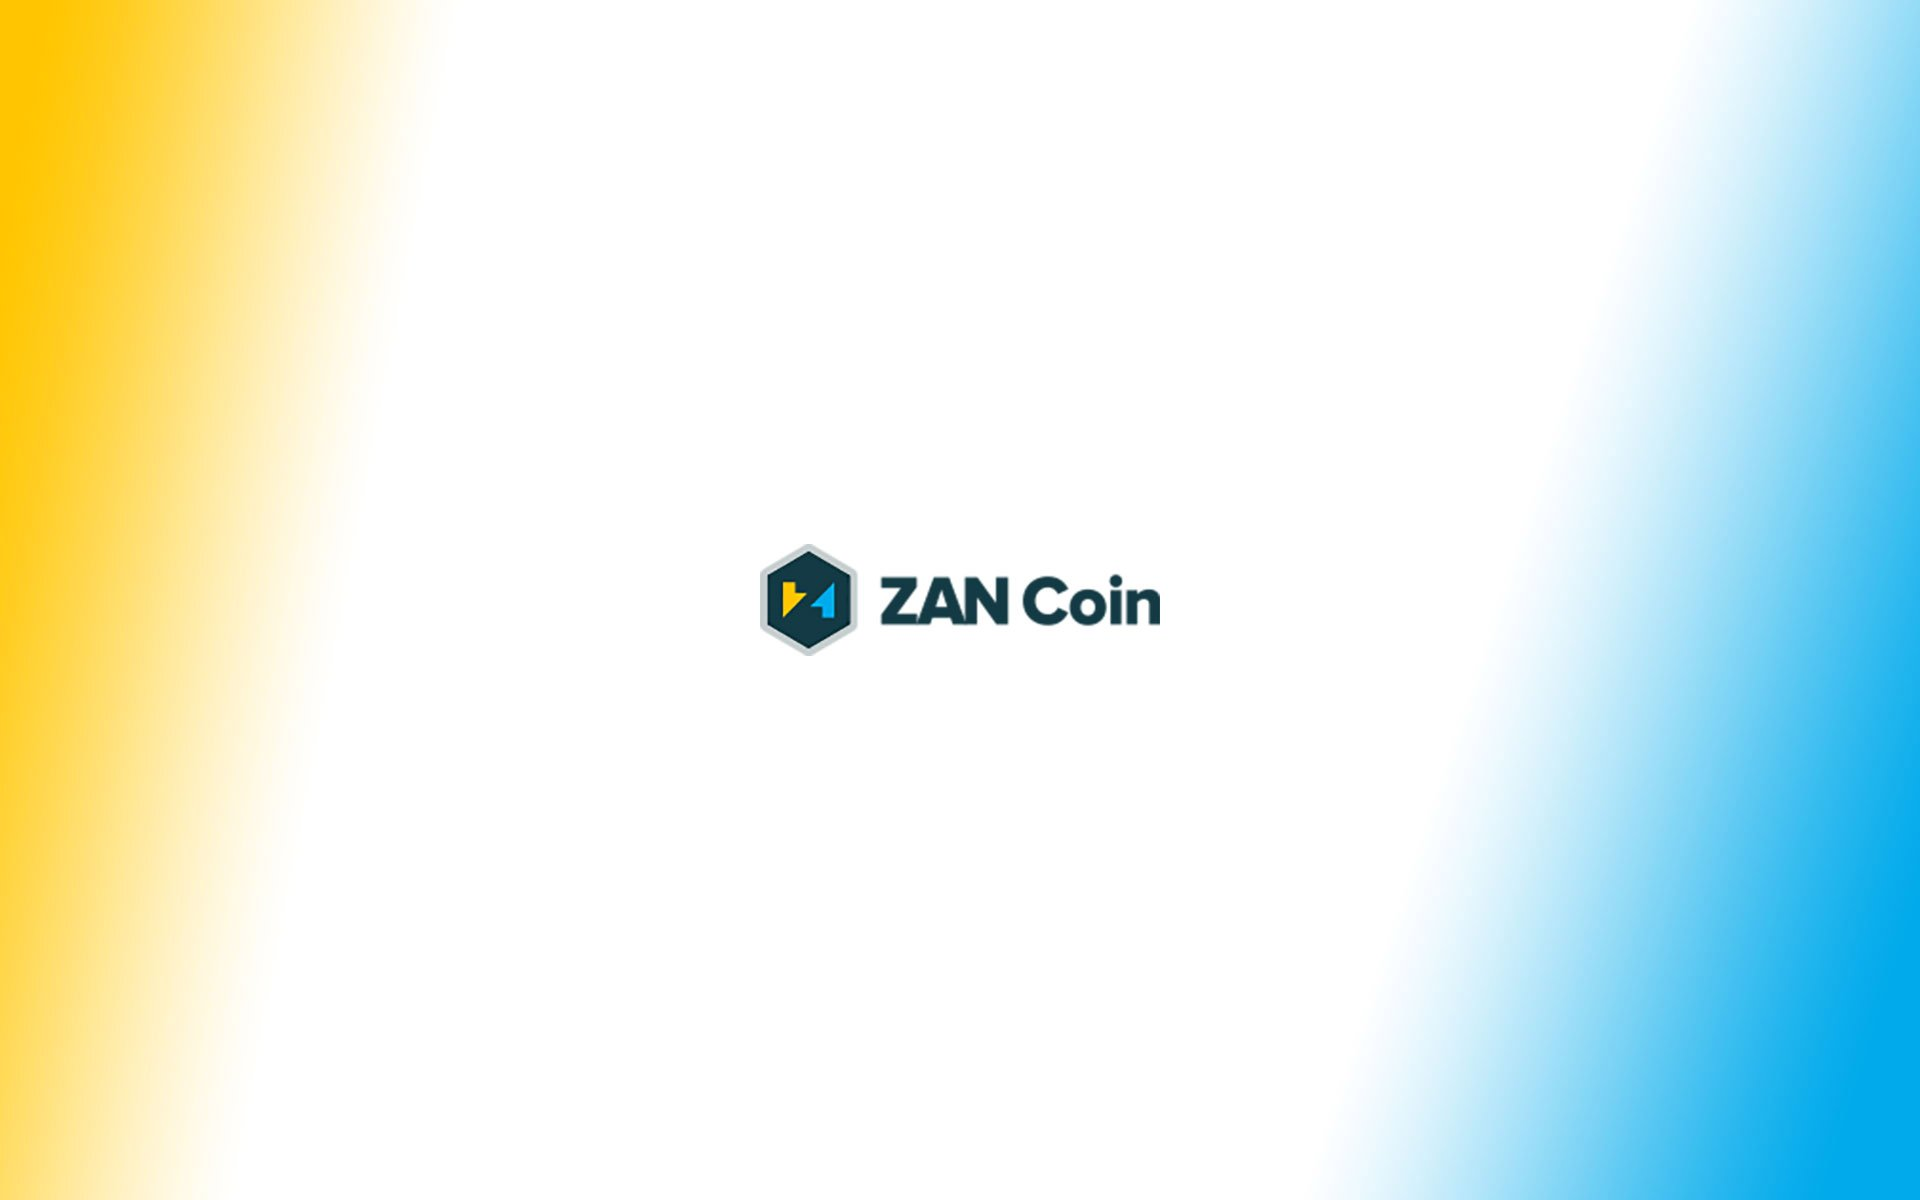 ZAN Coin Announces Launch Of ICO Backed By Groundbreaking Cryptocurrency Payment Processing Solution That Will Streamline Crypto Transactions